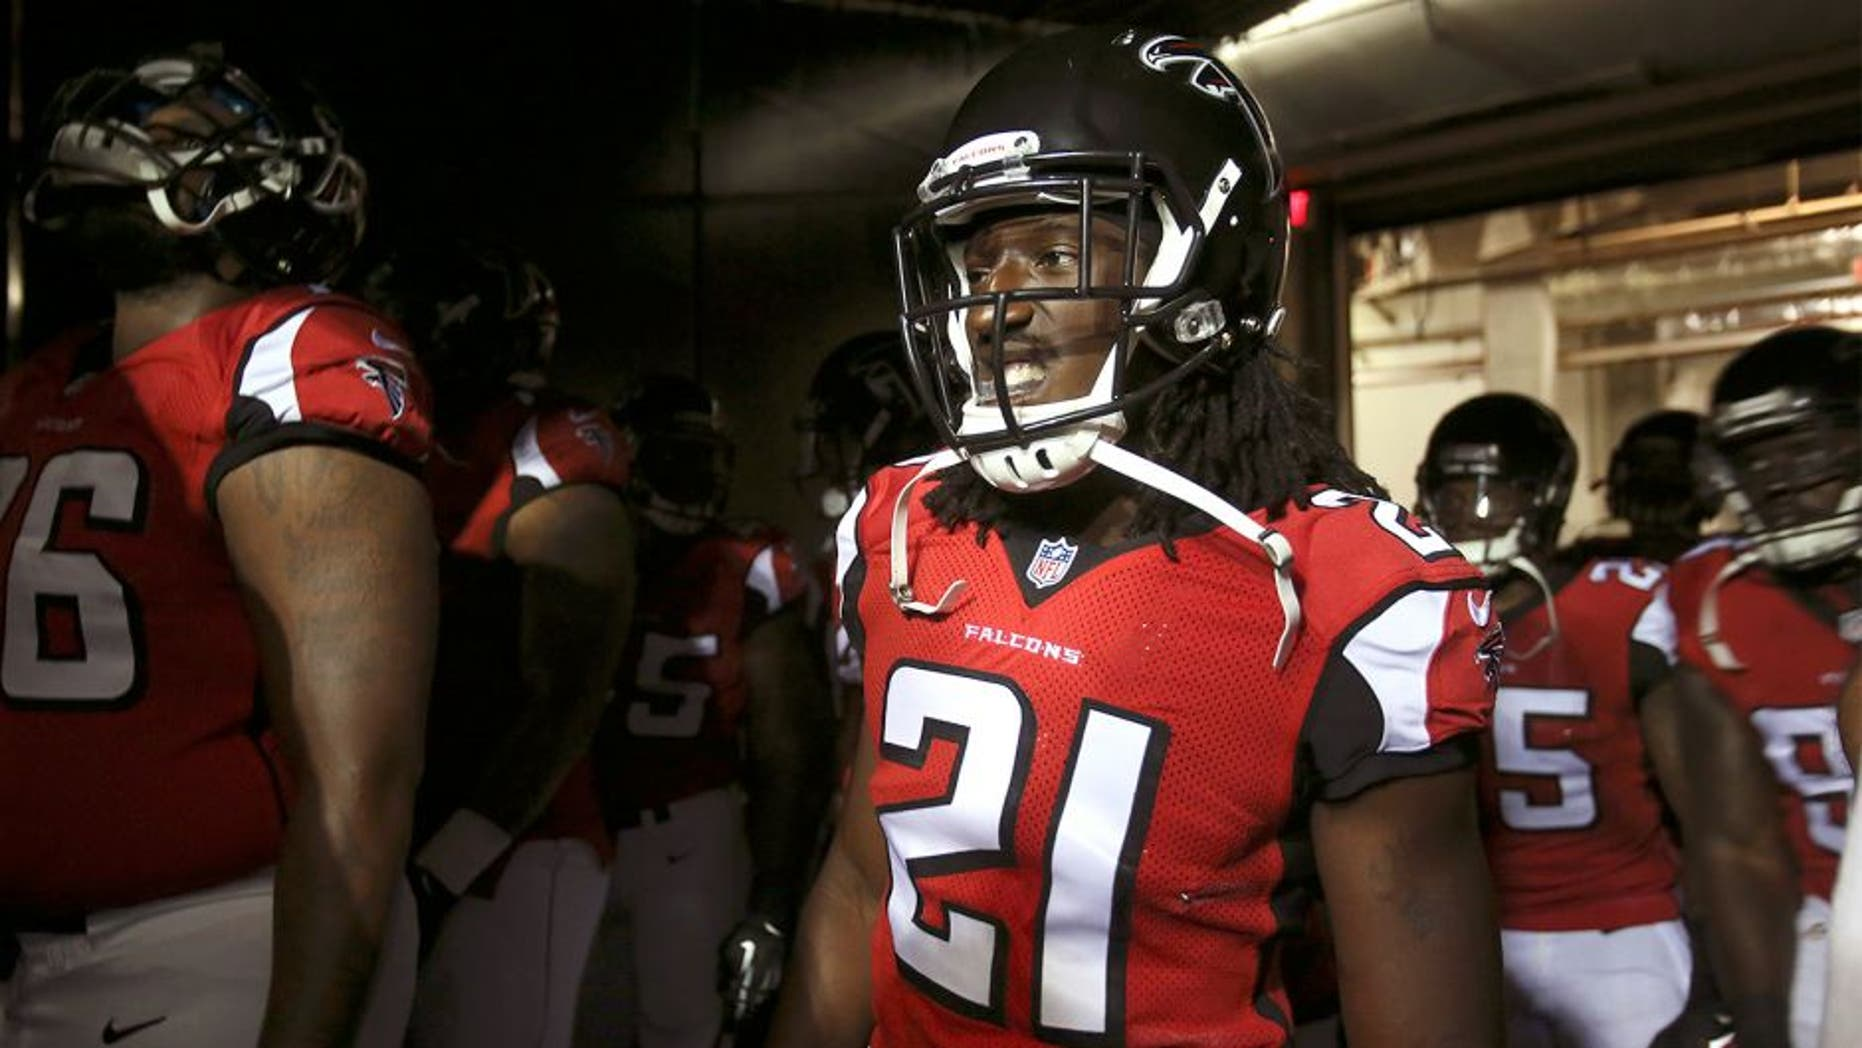 Aug 8, 2014; Atlanta, GA, USA; Atlanta Falcons cornerback Desmond Trufant (21) walks through the tunnel before their game against the Miami Dolphins at the Georgia Dome. The Falcons won 16-10. Mandatory Credit: Jason Getz-USA TODAY Sports